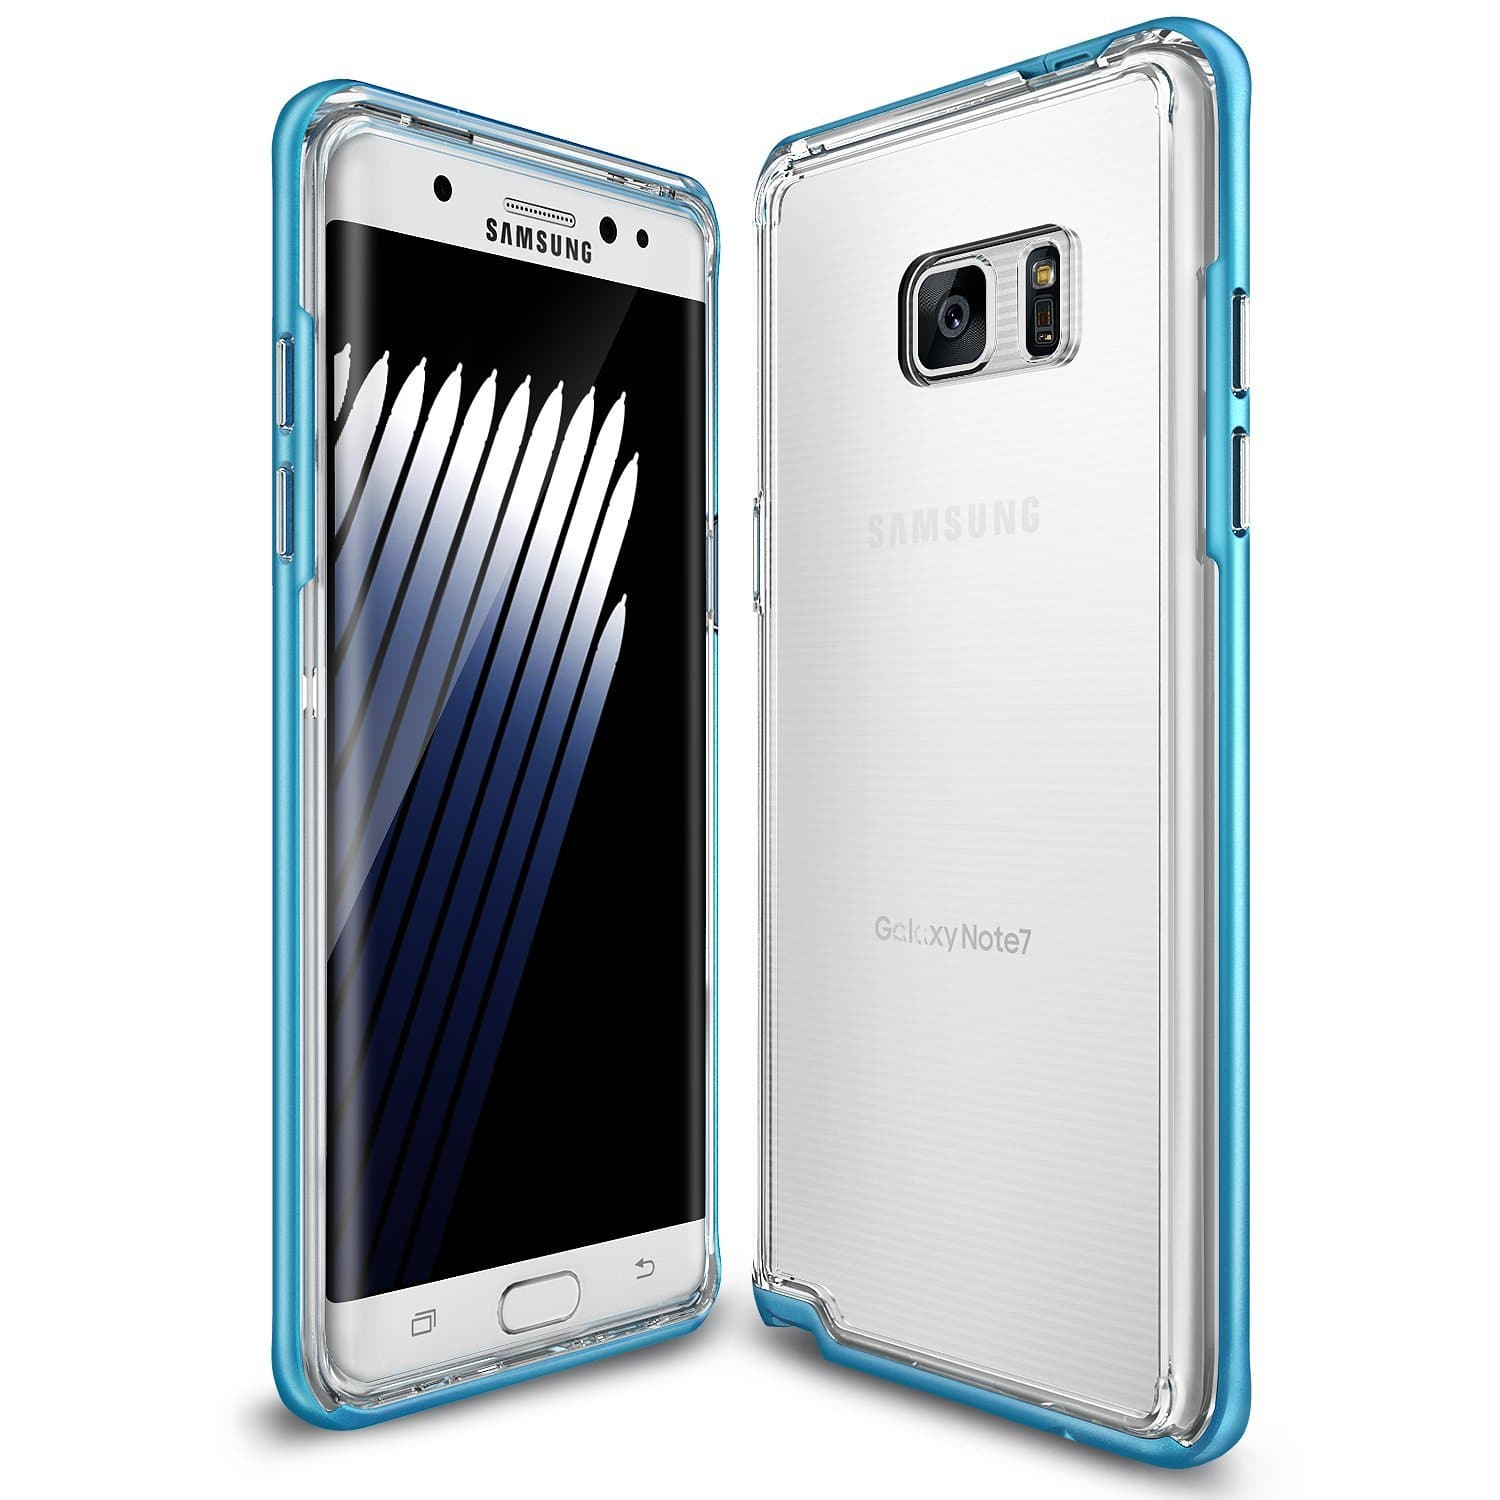 Ringke Cases for Samsung Galaxy Note 7  $3 + Free Shipping